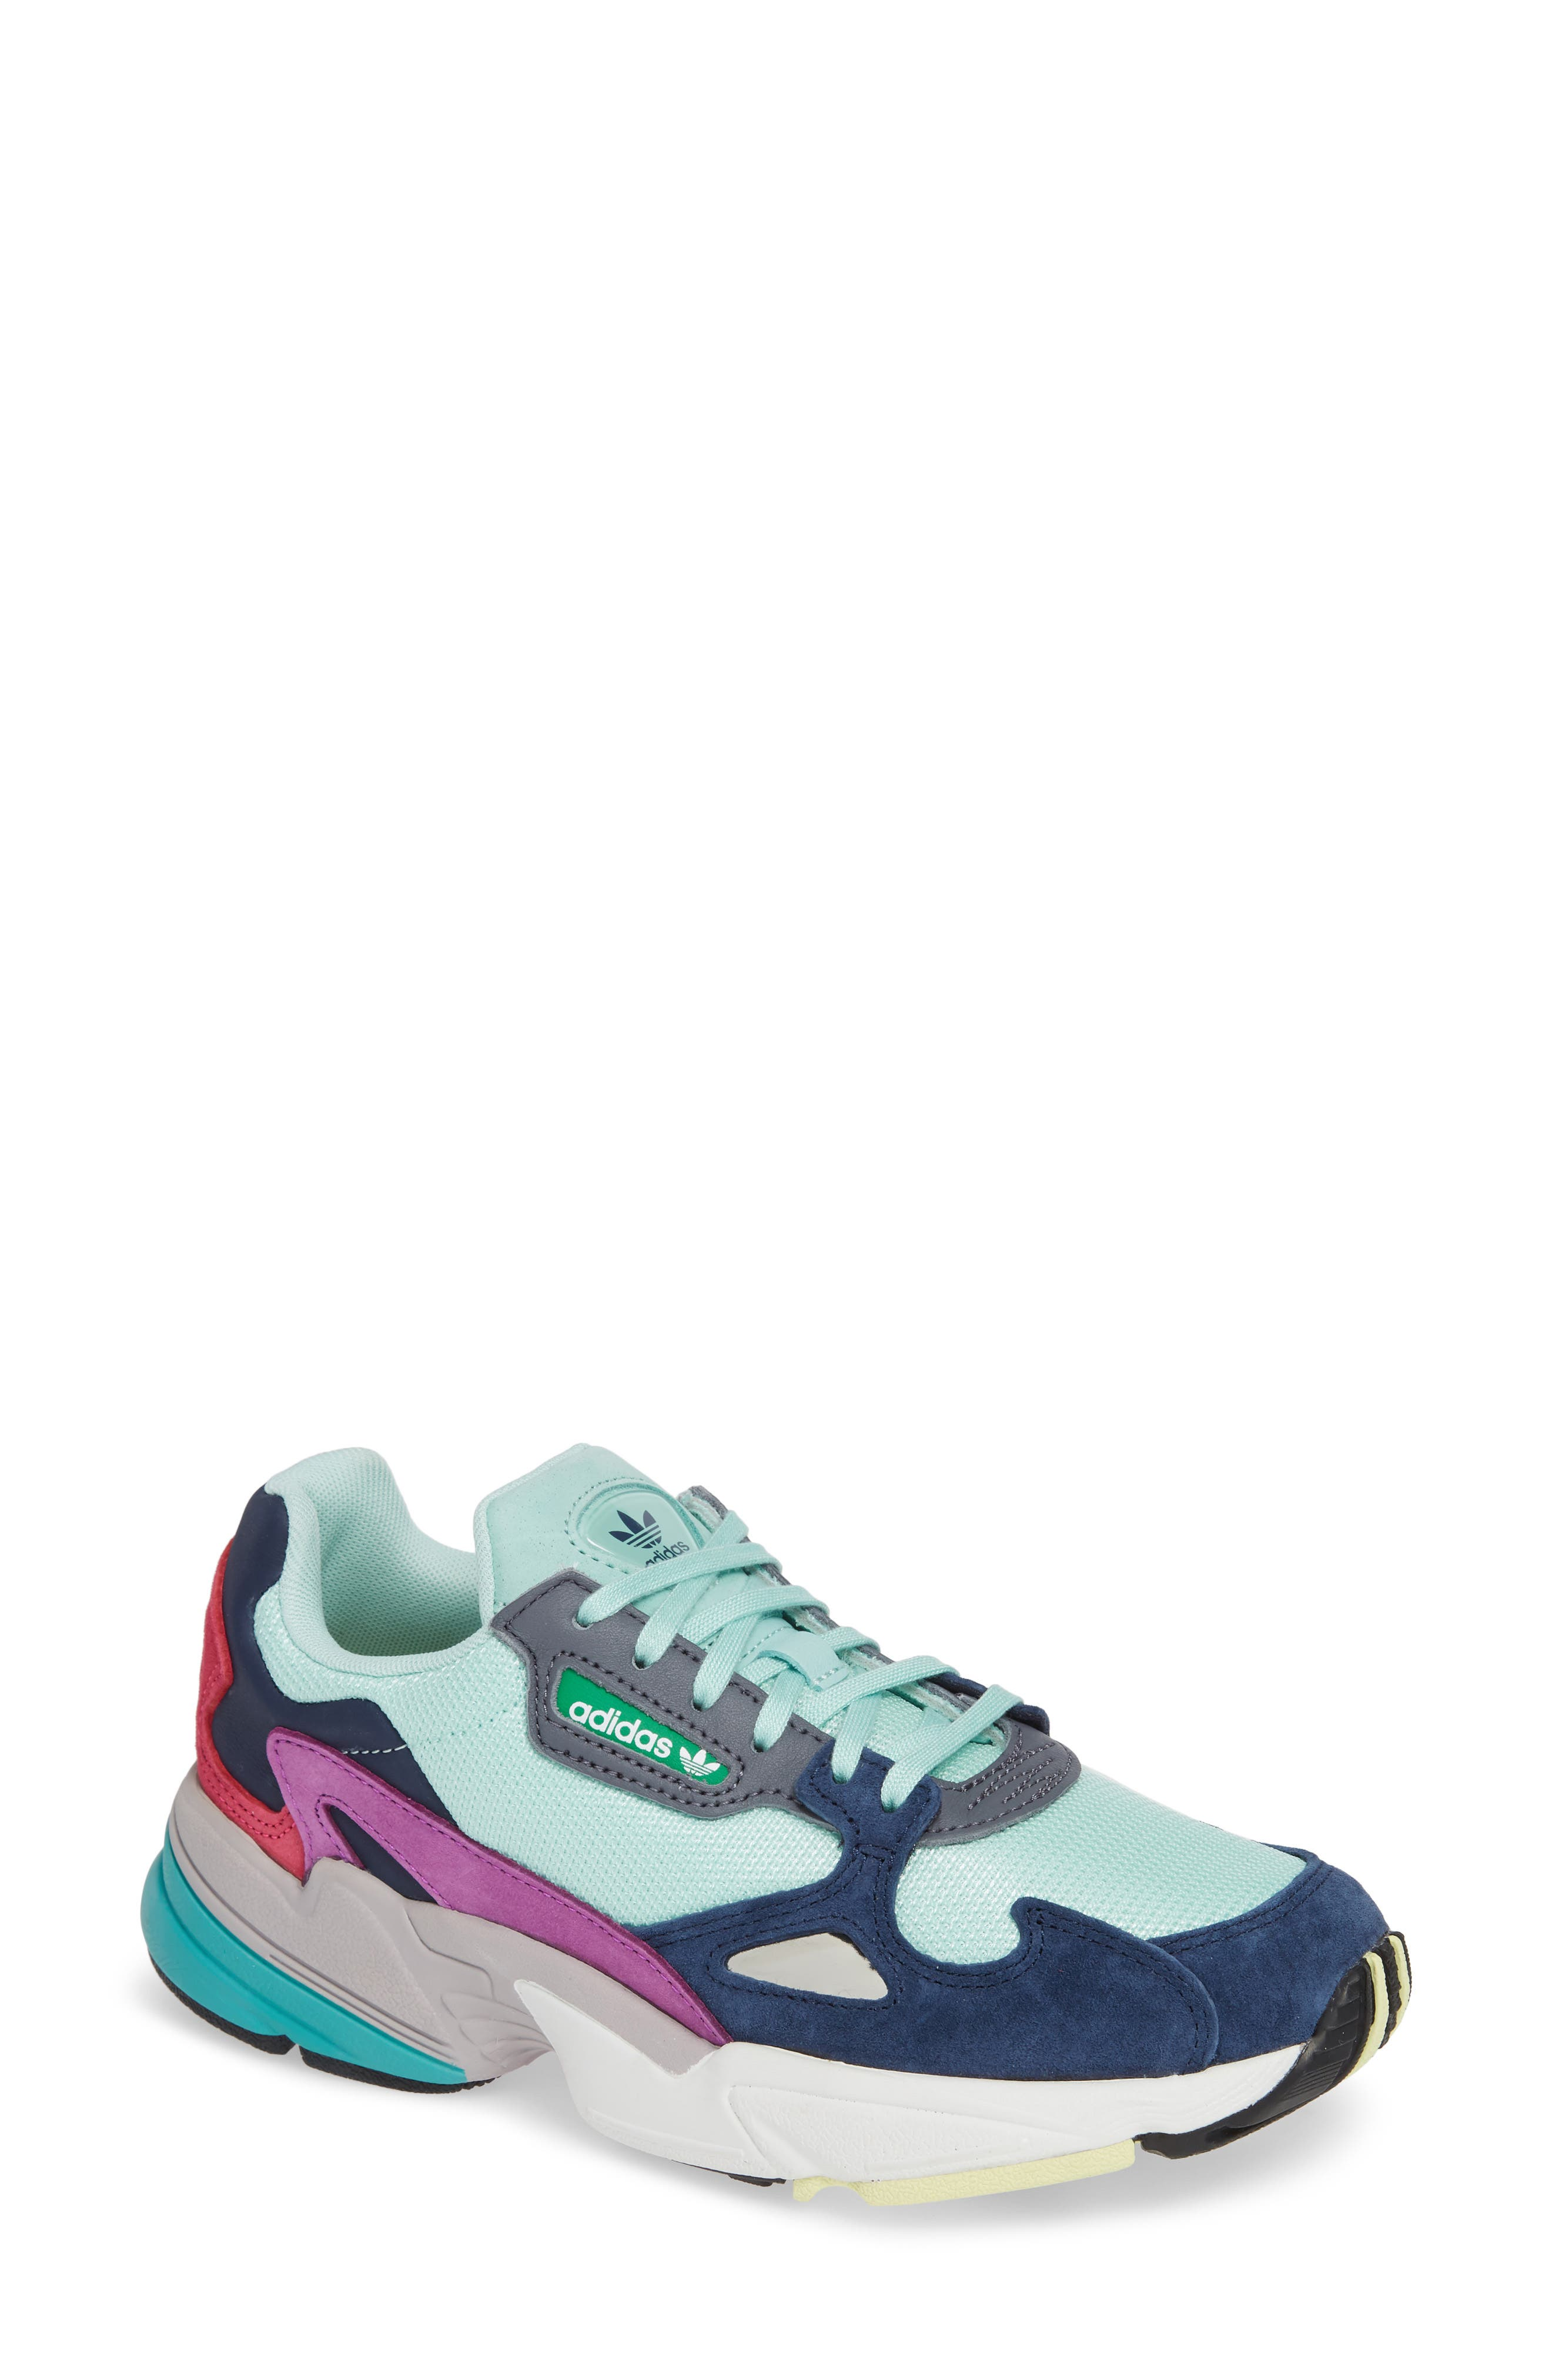 Falcon Sneaker,                         Main,                         color, CLEAR MINT/ CLEAR MINT/ NAVY